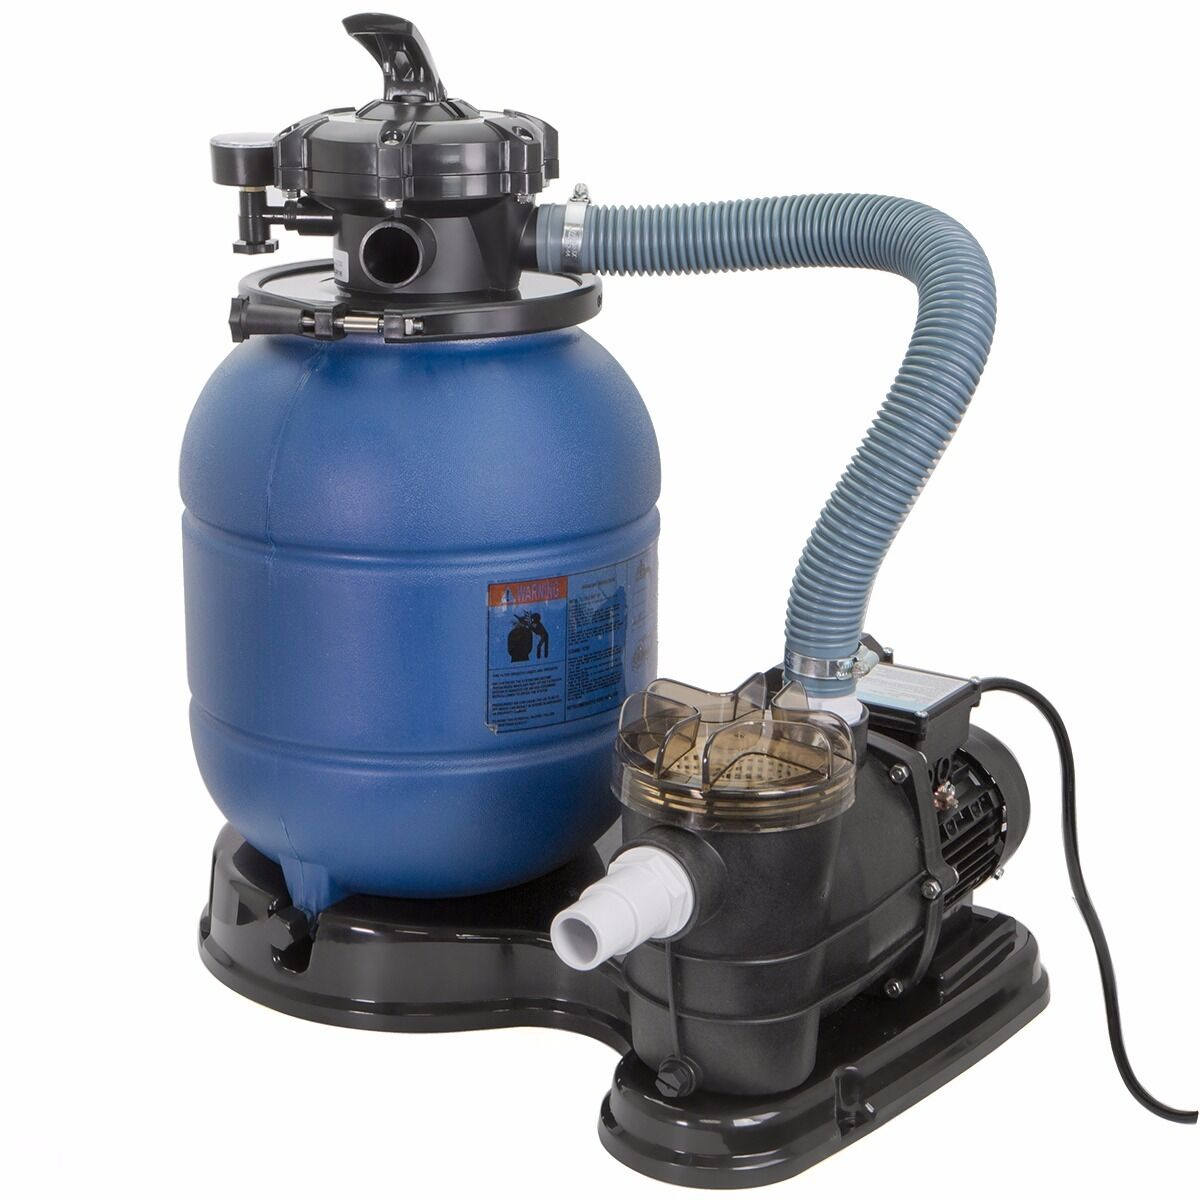 Pool Filter Pump Pressure 2400gph 13 Quot Sand Filter 3 4 Hp Above Ground Swimming Pool